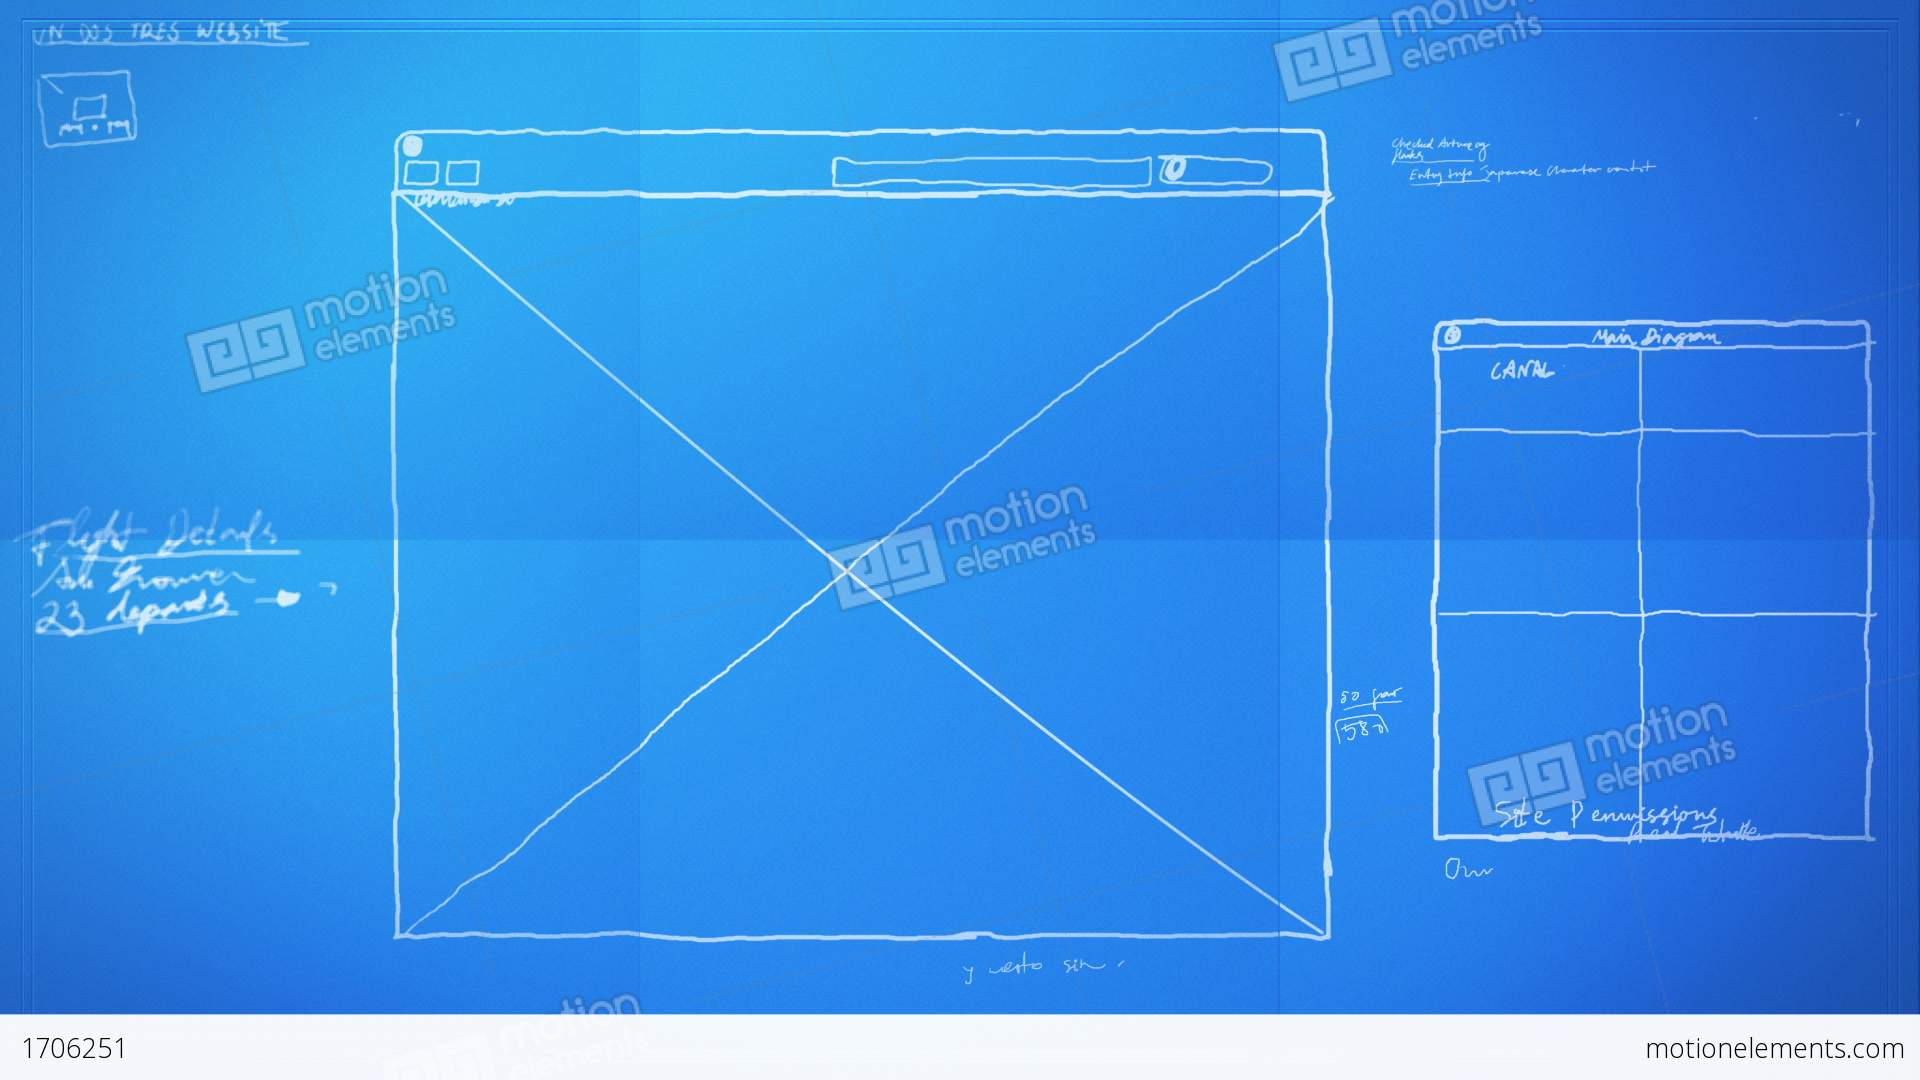 Graphic design layout process time lapse blueprint stock animation graphic design layout process time lapse blueprint stock video footage malvernweather Images